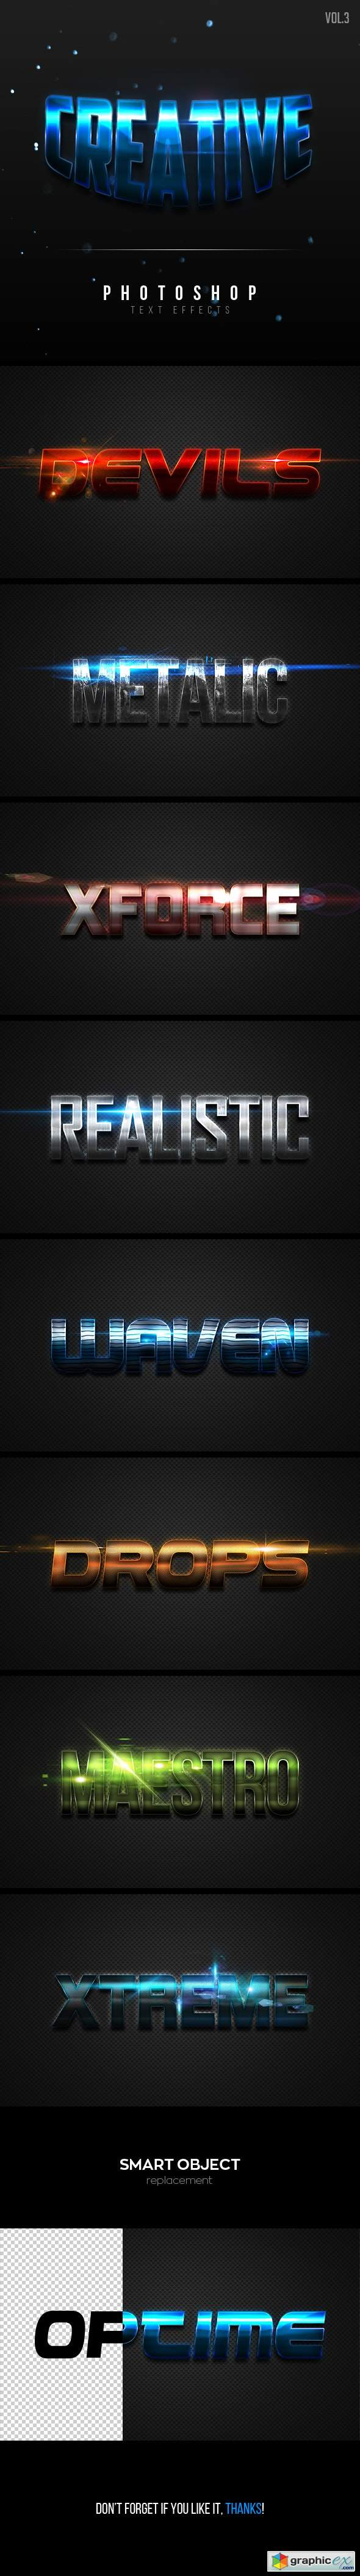 Creative Text Effects Vol.3